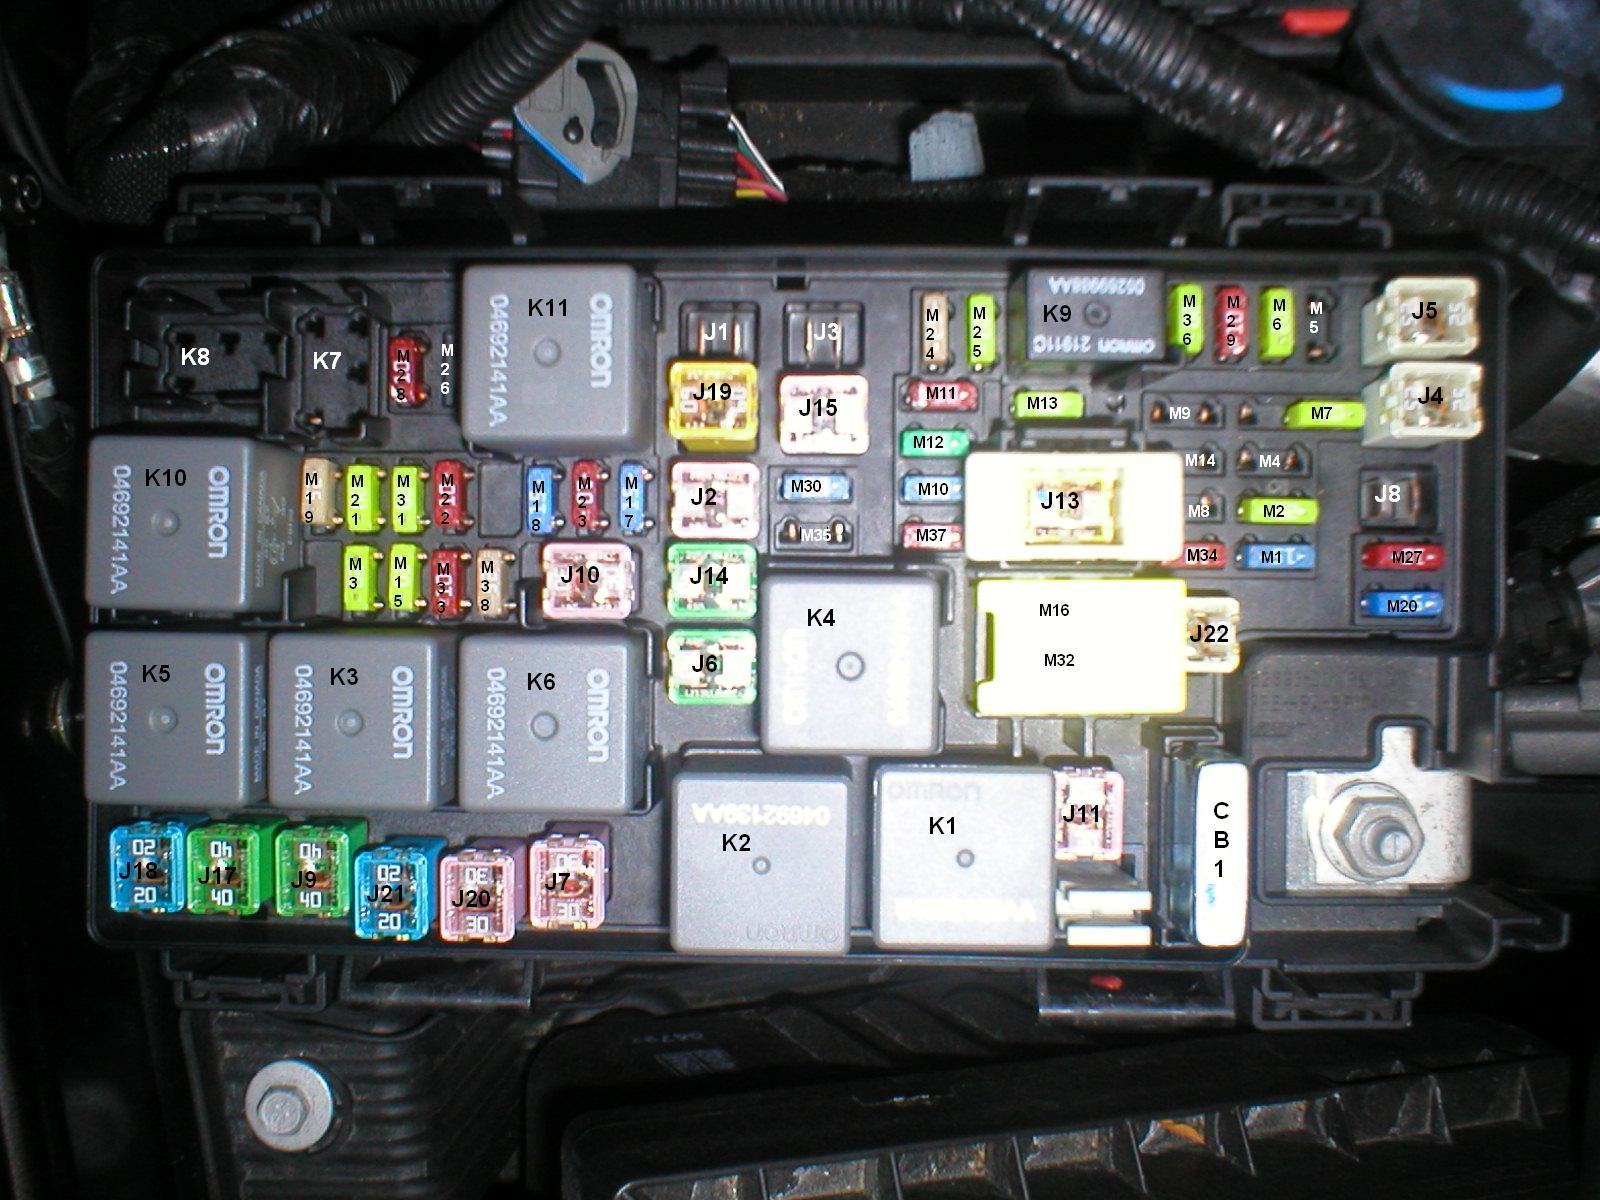 hight resolution of jeep jk fuse box map layout diagram jeepforum com jeep xj fuse box jeep fuse box